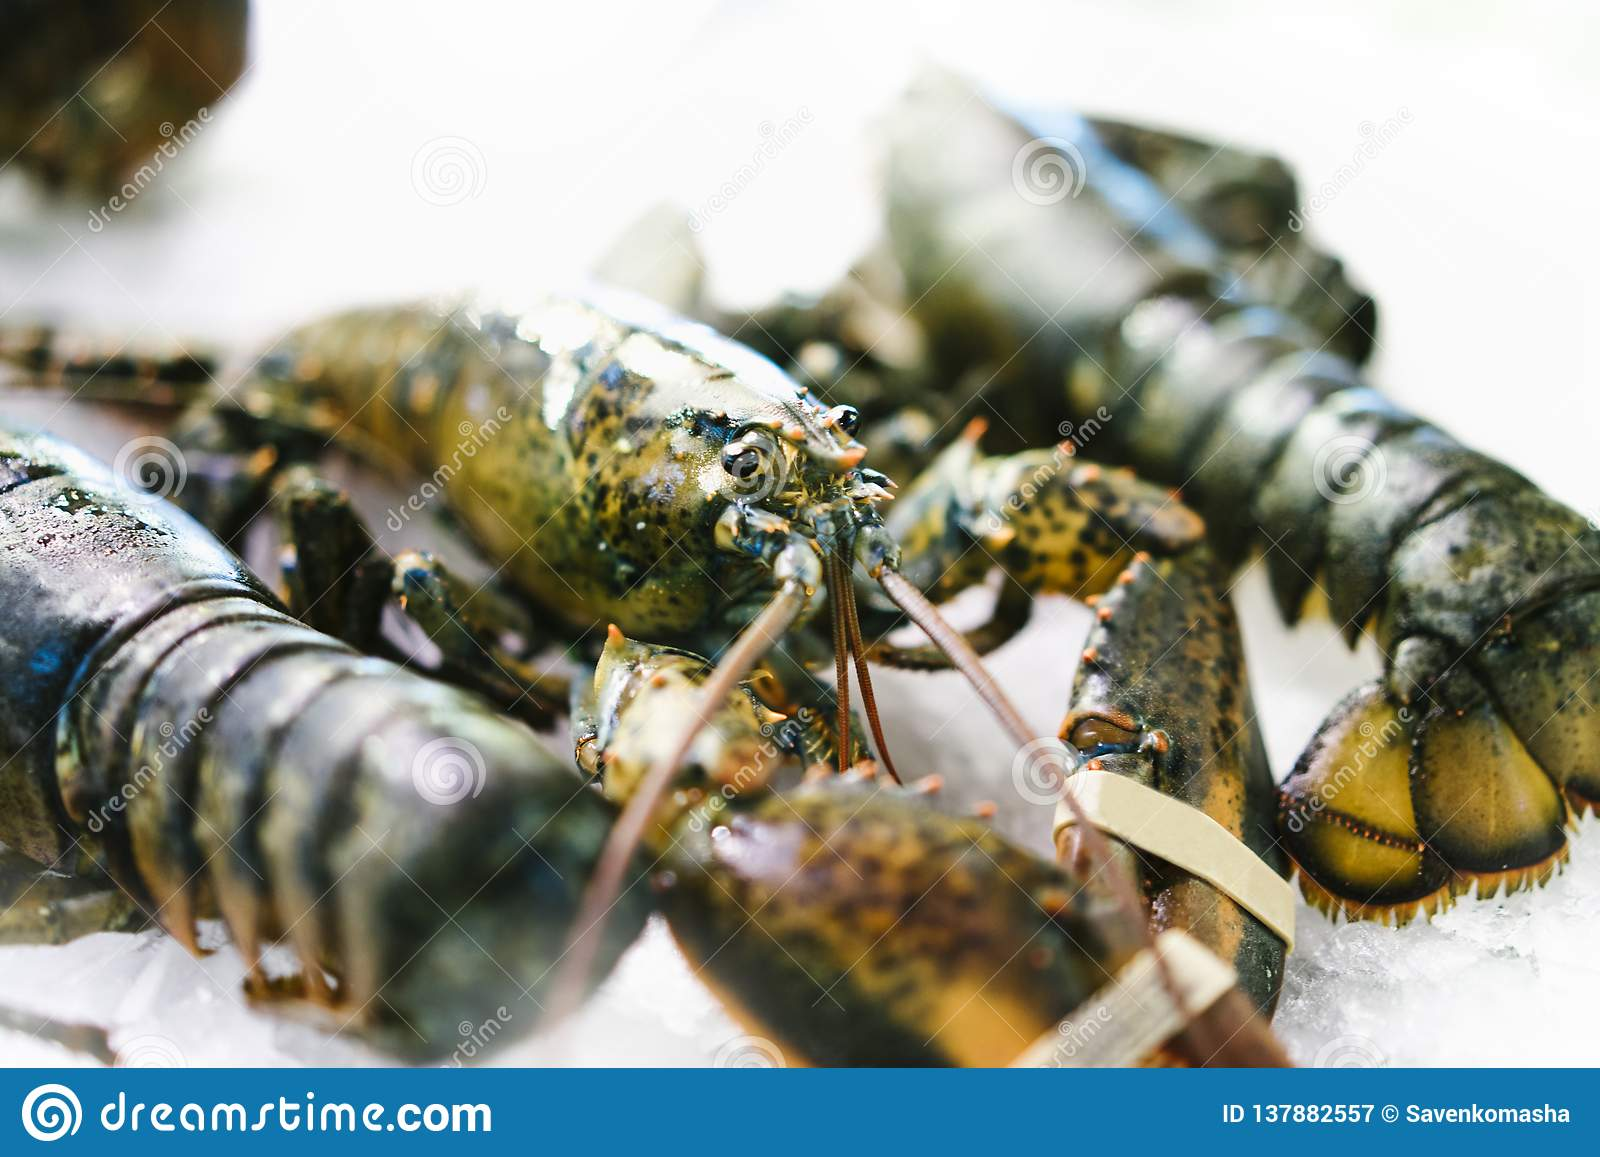 Isolated lobster on ice background on the market, closeup of fresh crustacean products in restaurant, useful shellfish sea food